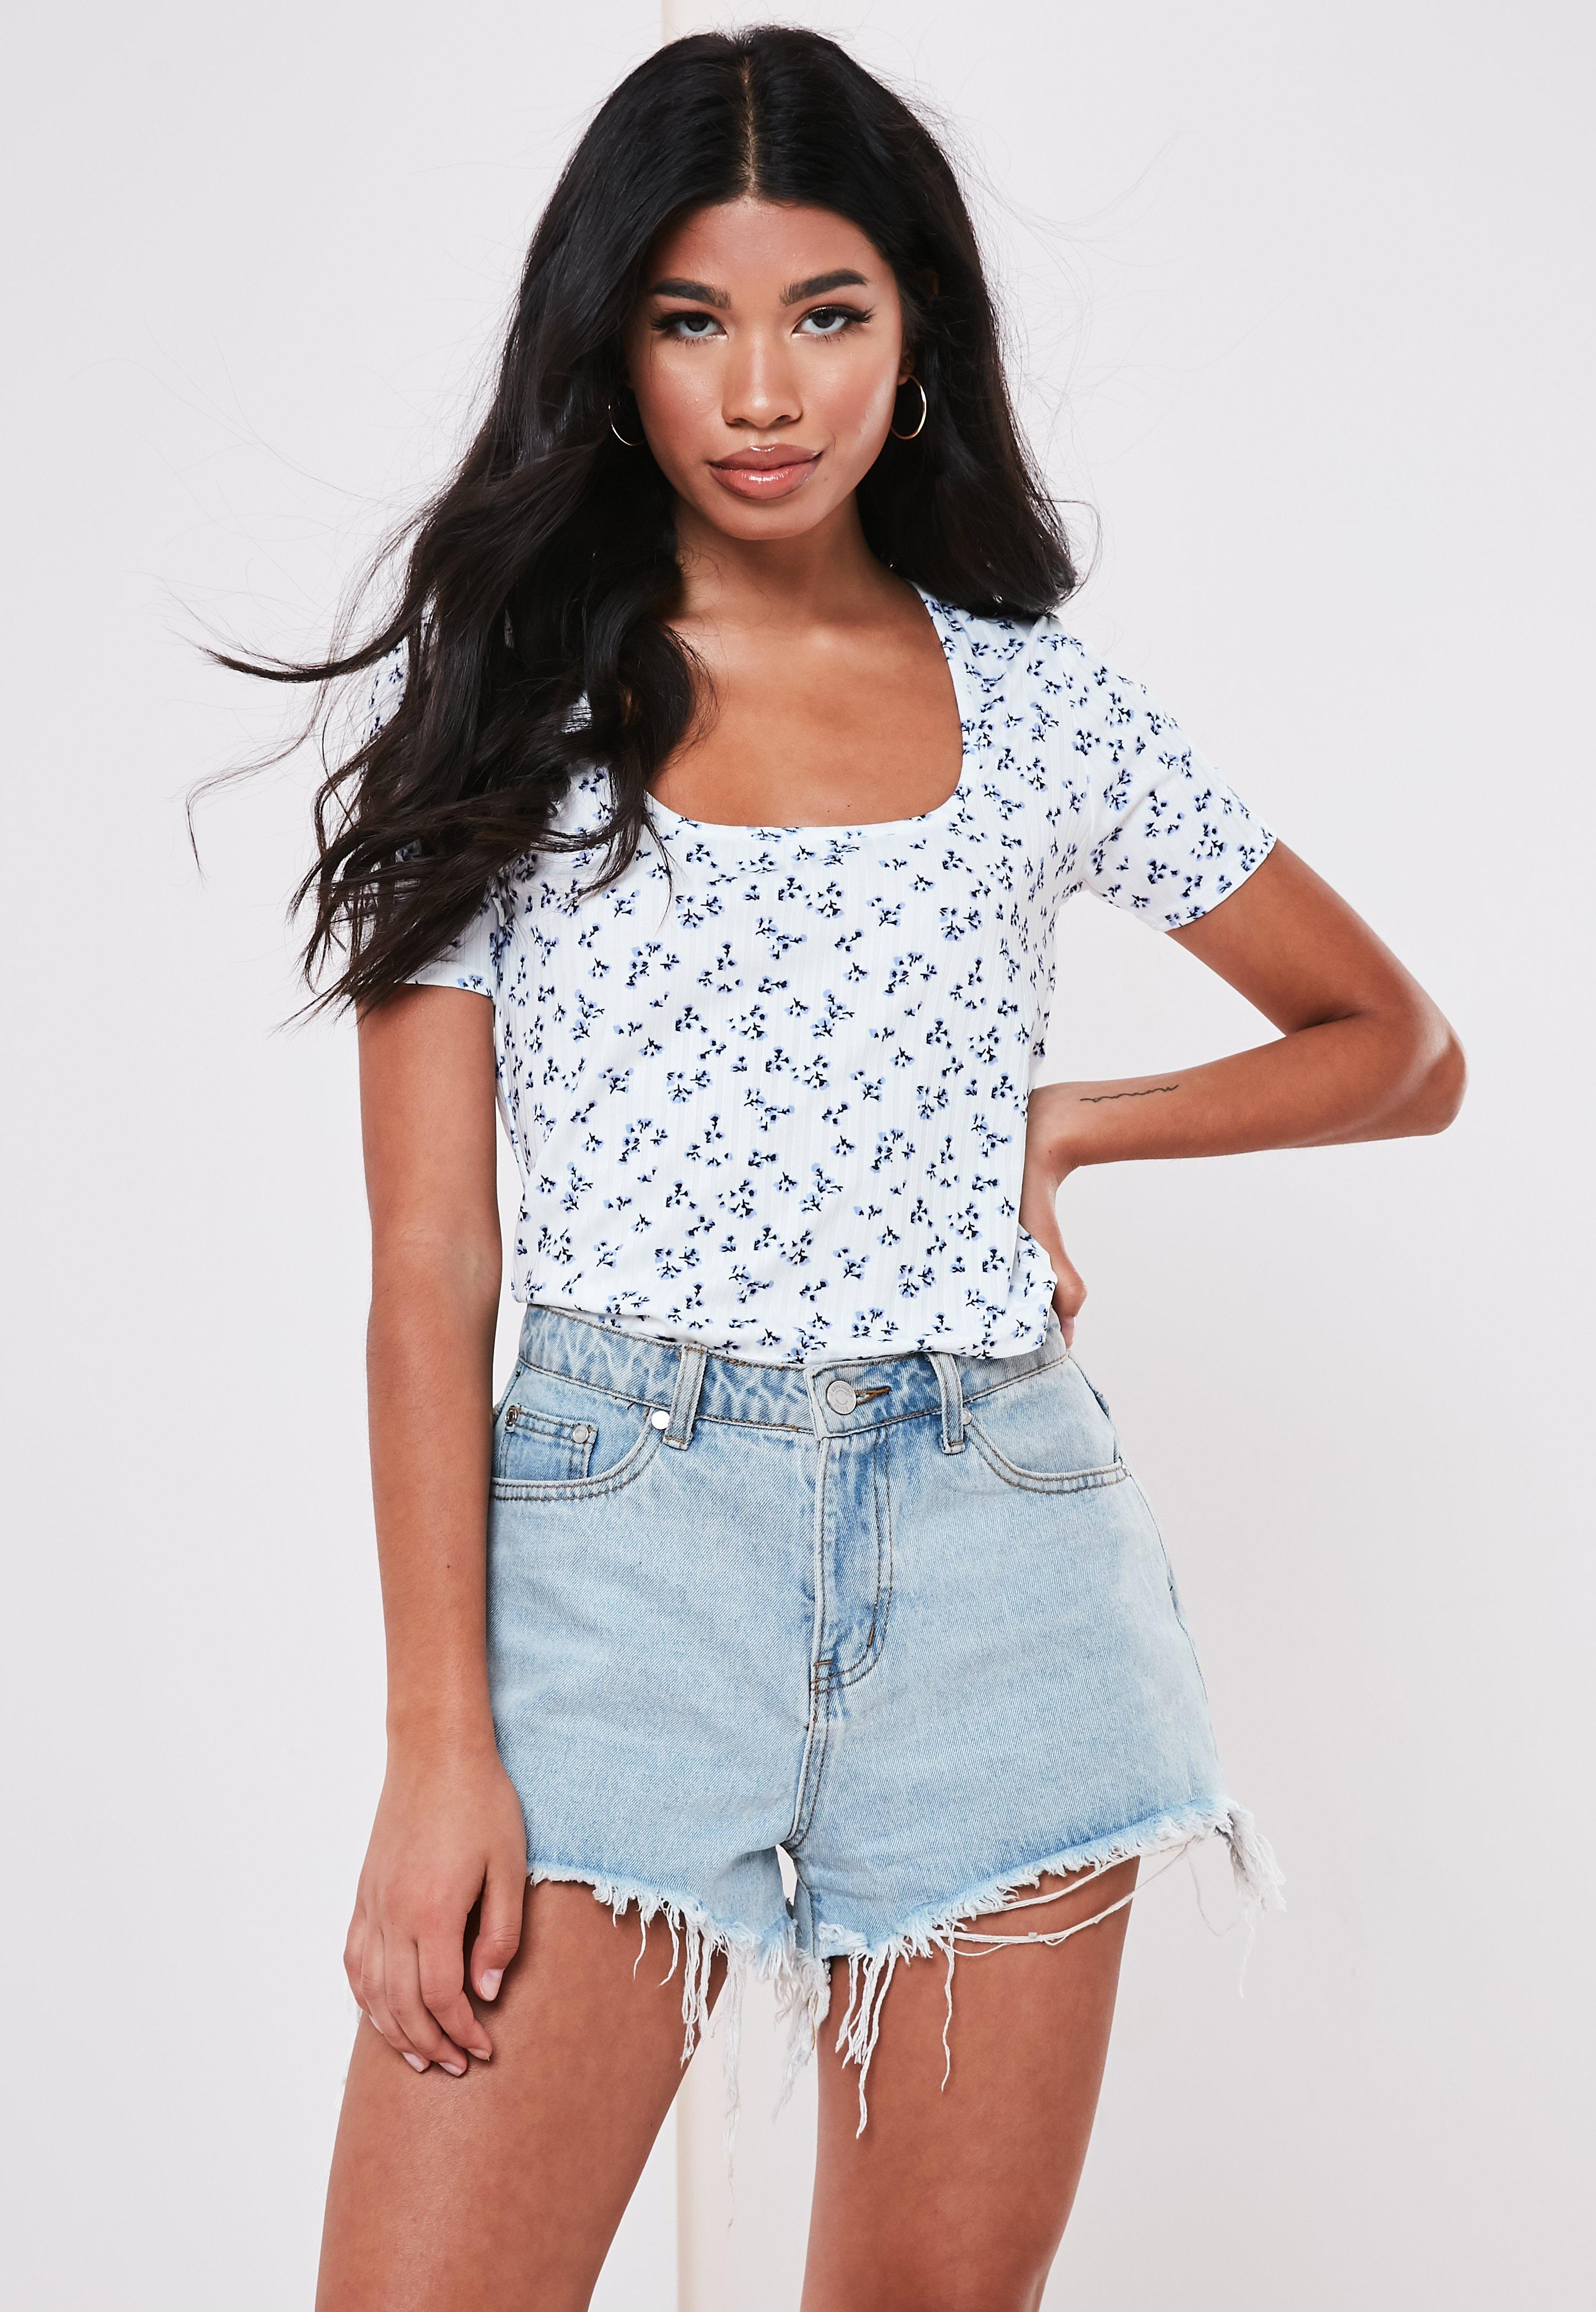 057c73883 T-Shirts & Women's Tees - Missguided